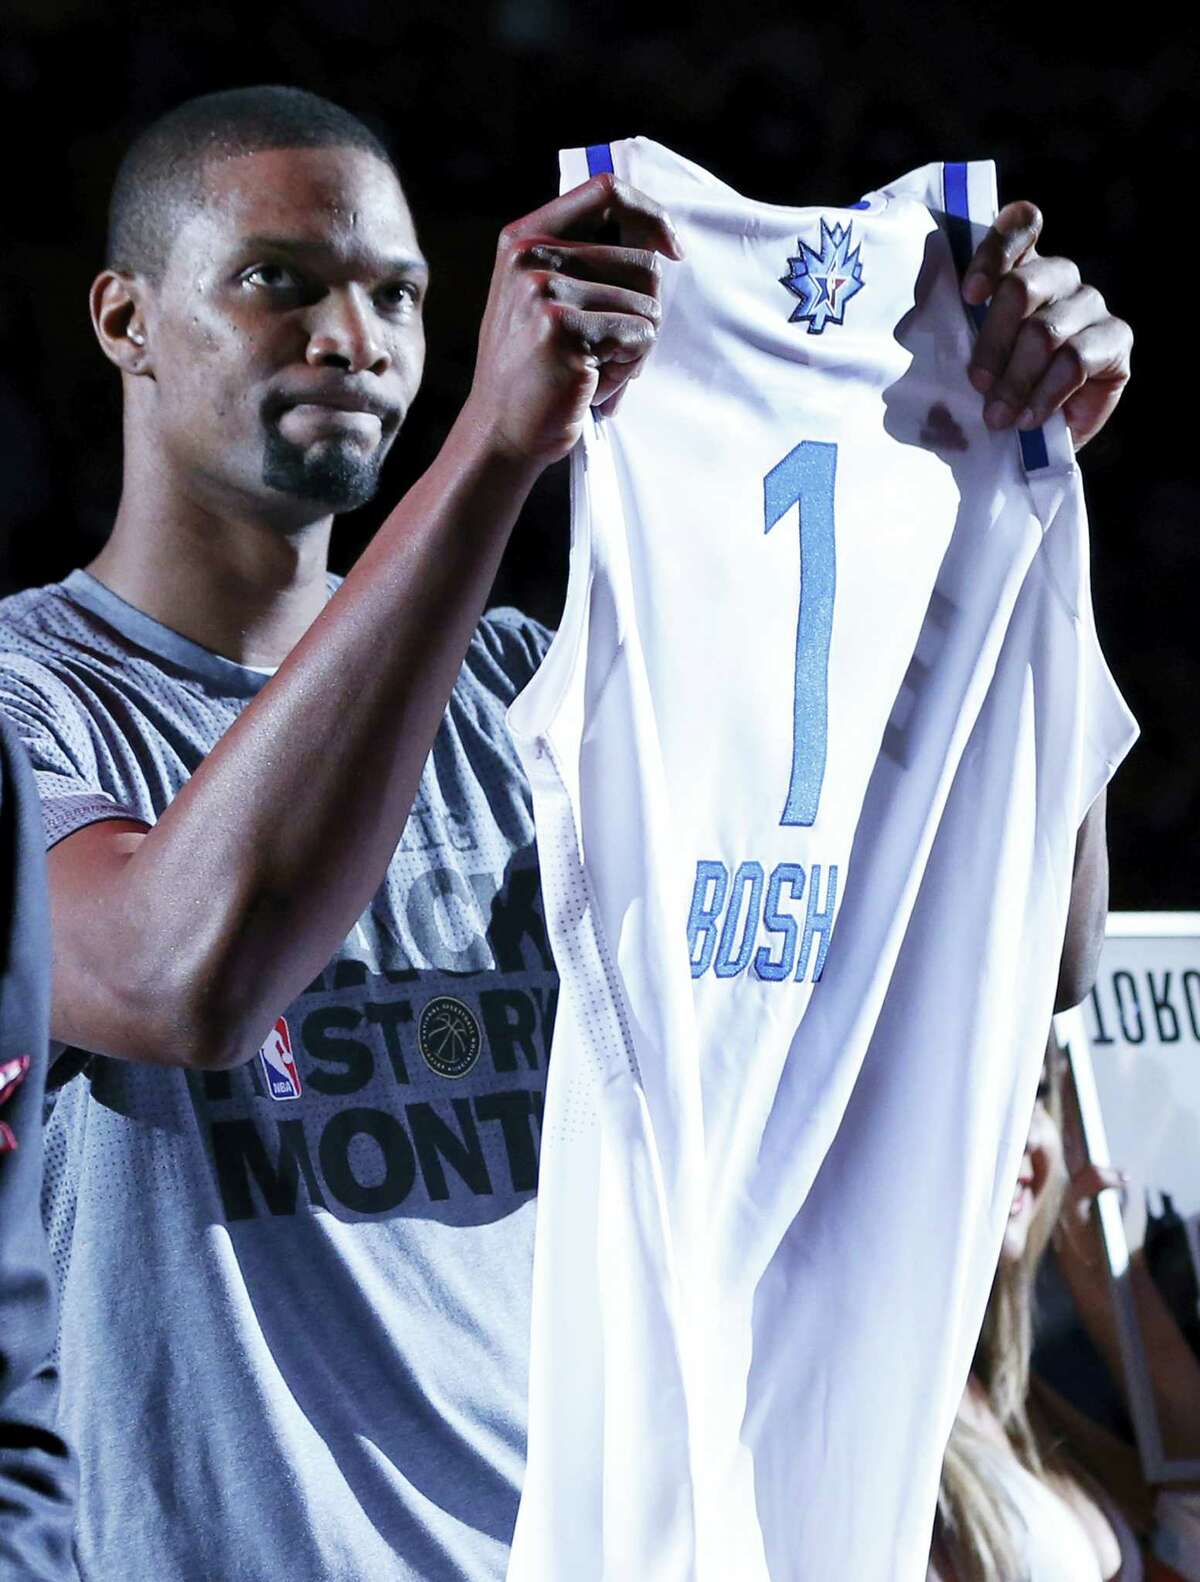 Miami Heat forward Chris Bosh holds up a jersey for the NBA All-Star Game on Tuesday. Bosh will not participate due to a strained right calf.